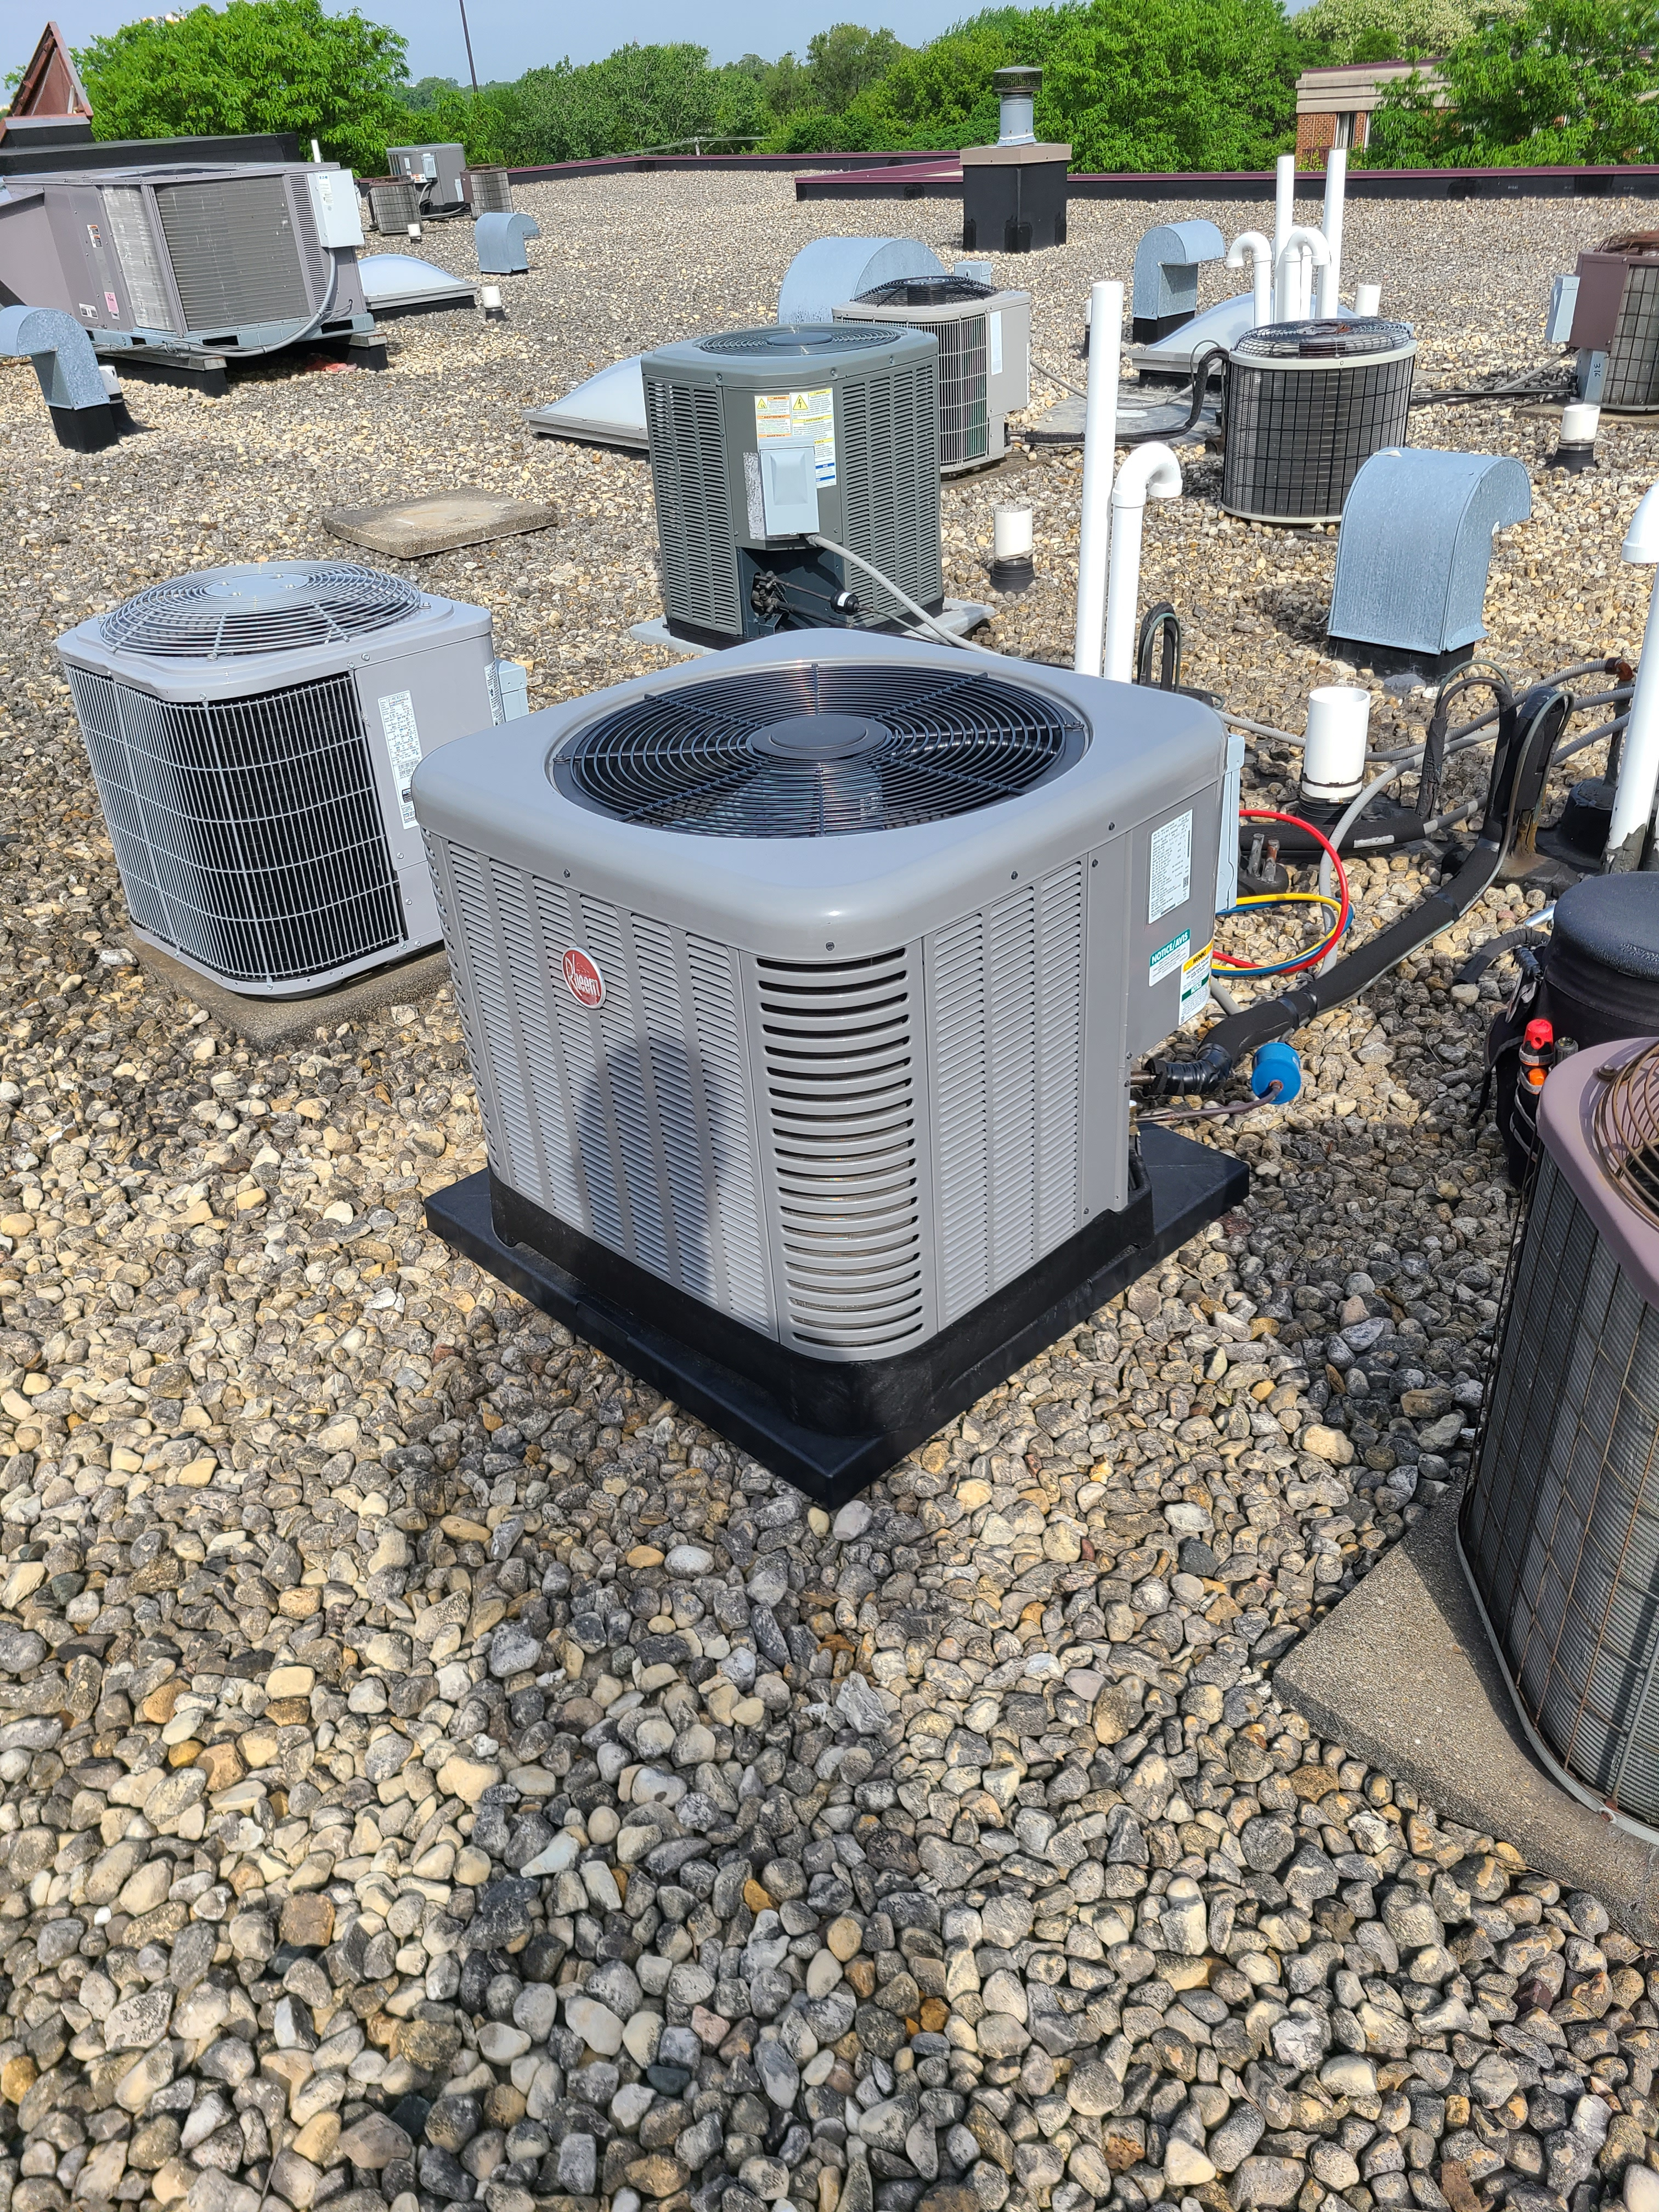 Rheem 410a system cleaned and ready for spring/ summer operation